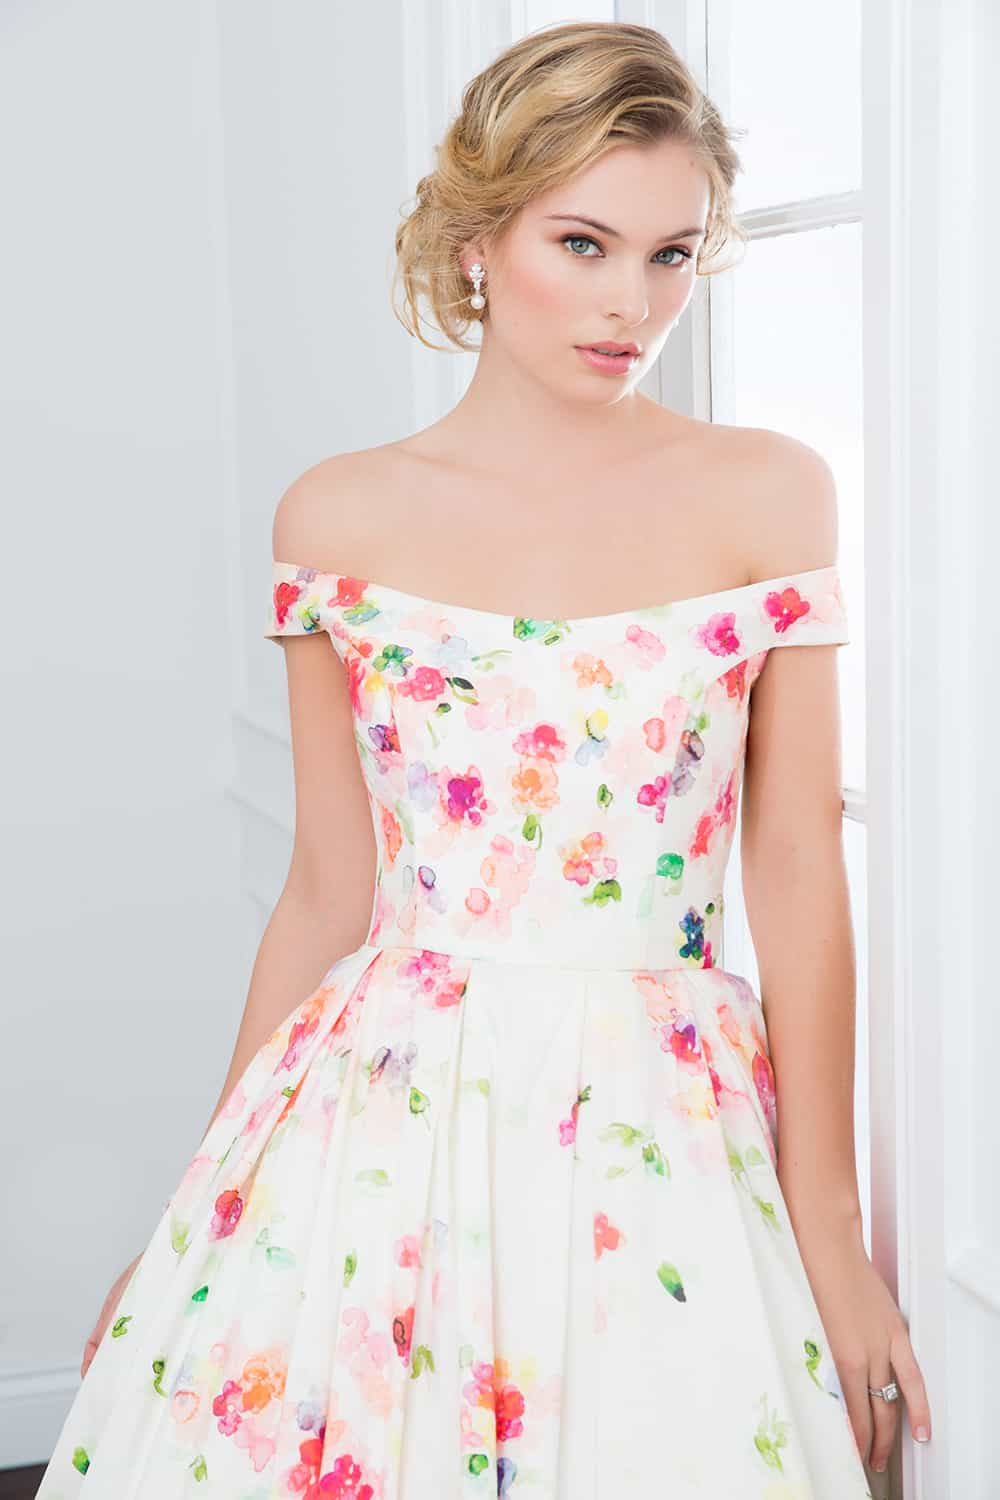 The Daphne floral off the shoulder wedding gown from Wendy Makin Couture.